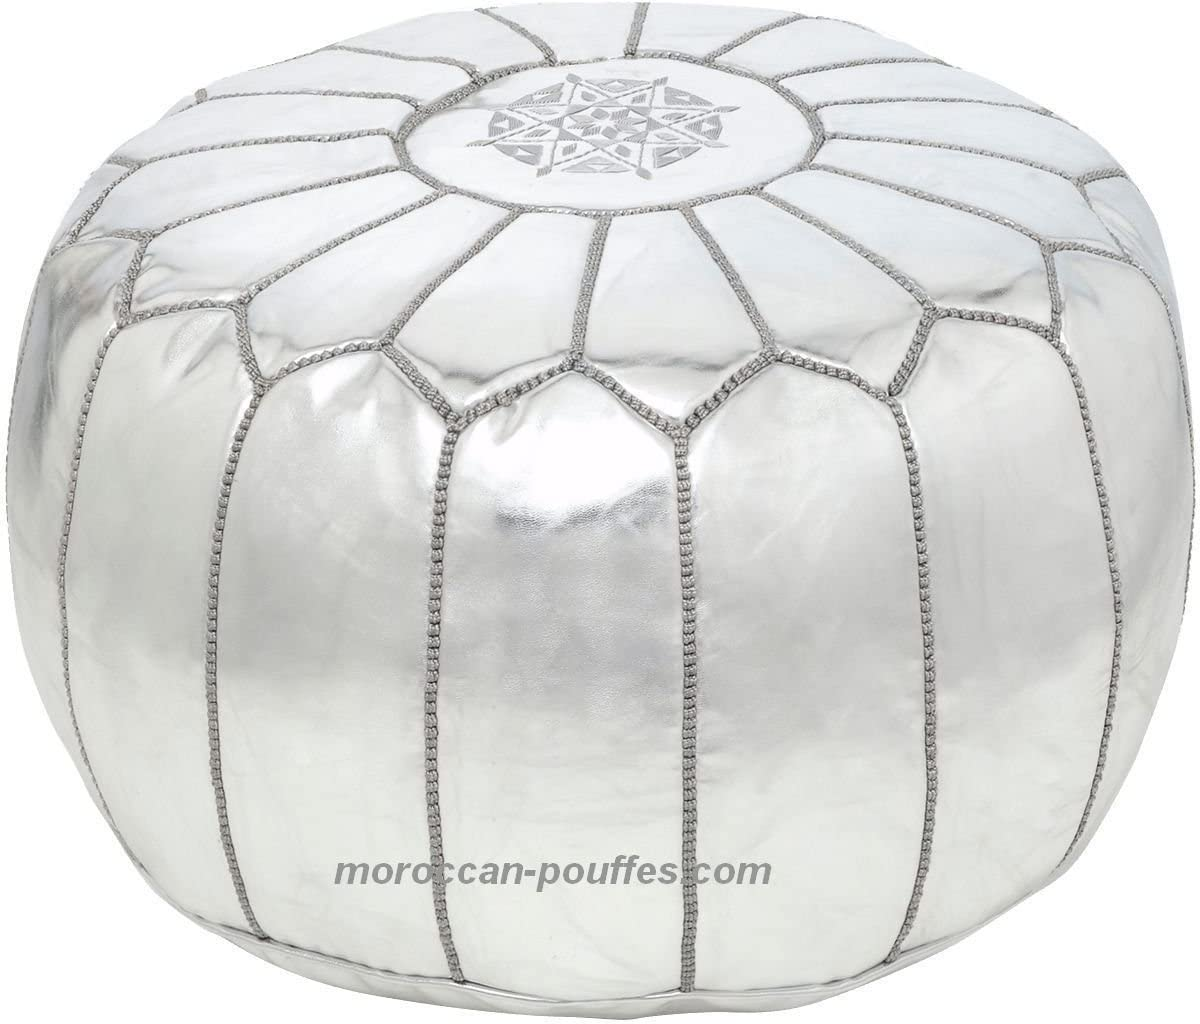 moroccan 55% OFF Max 50% OFF poufs leather luxury ottomans unstuff silver footstools